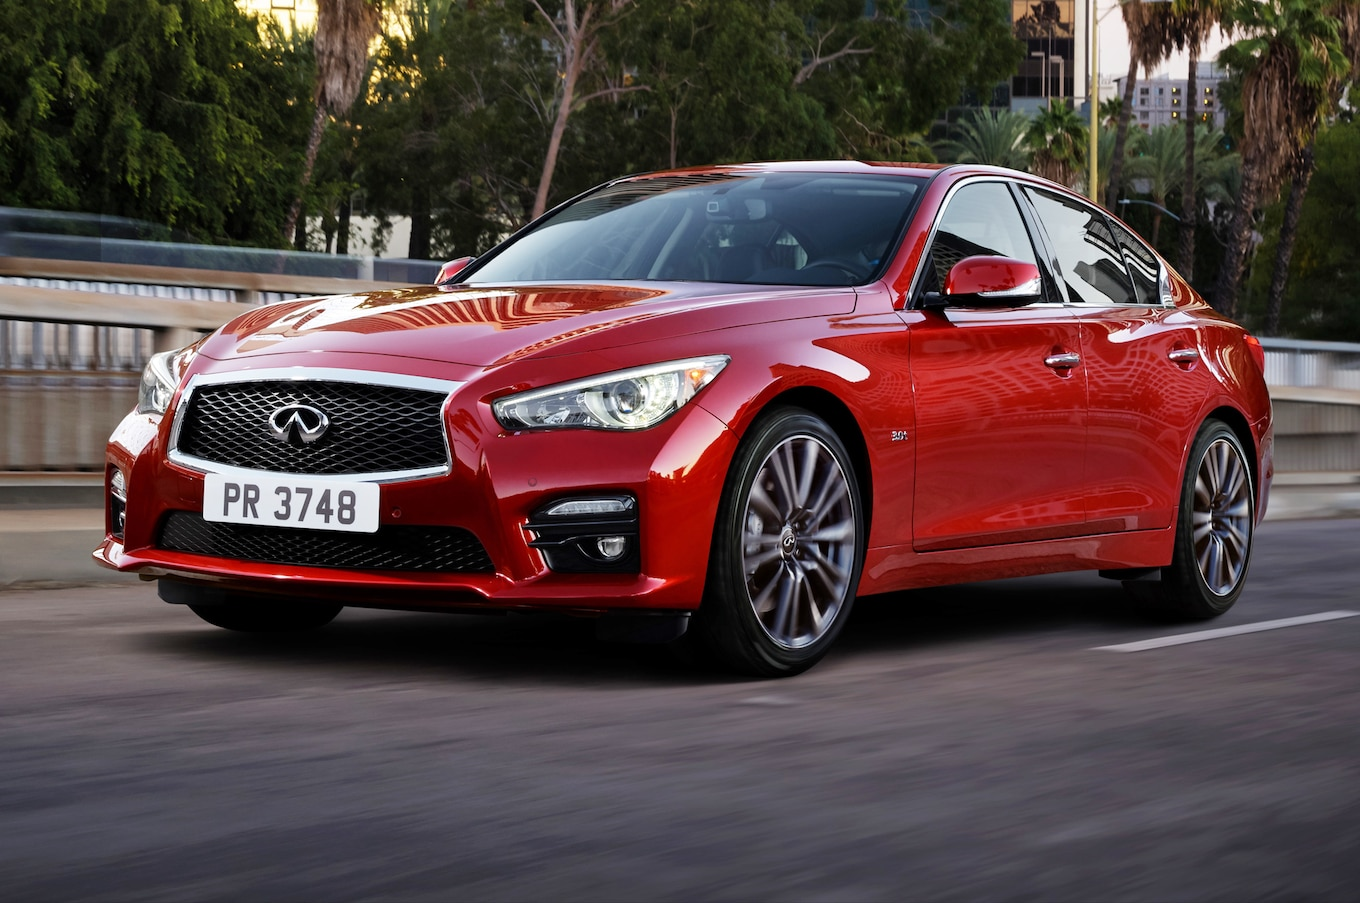 2016 Infiniti Q50 First Look Review  Motor Trend